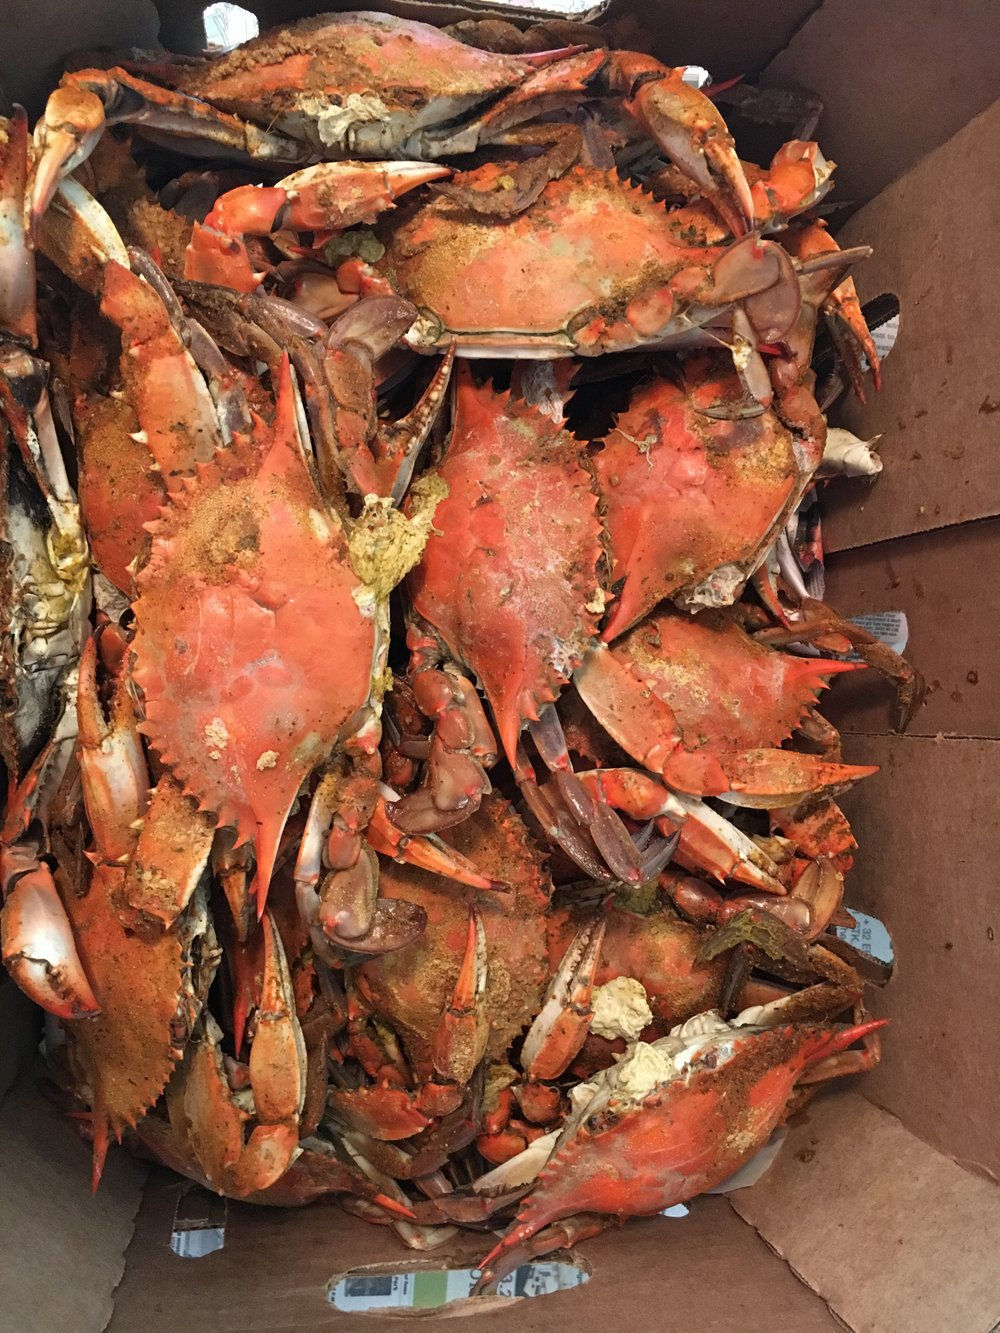 3.) I miss Maryland crabs. This is from my trip home in March. HEAVEN.